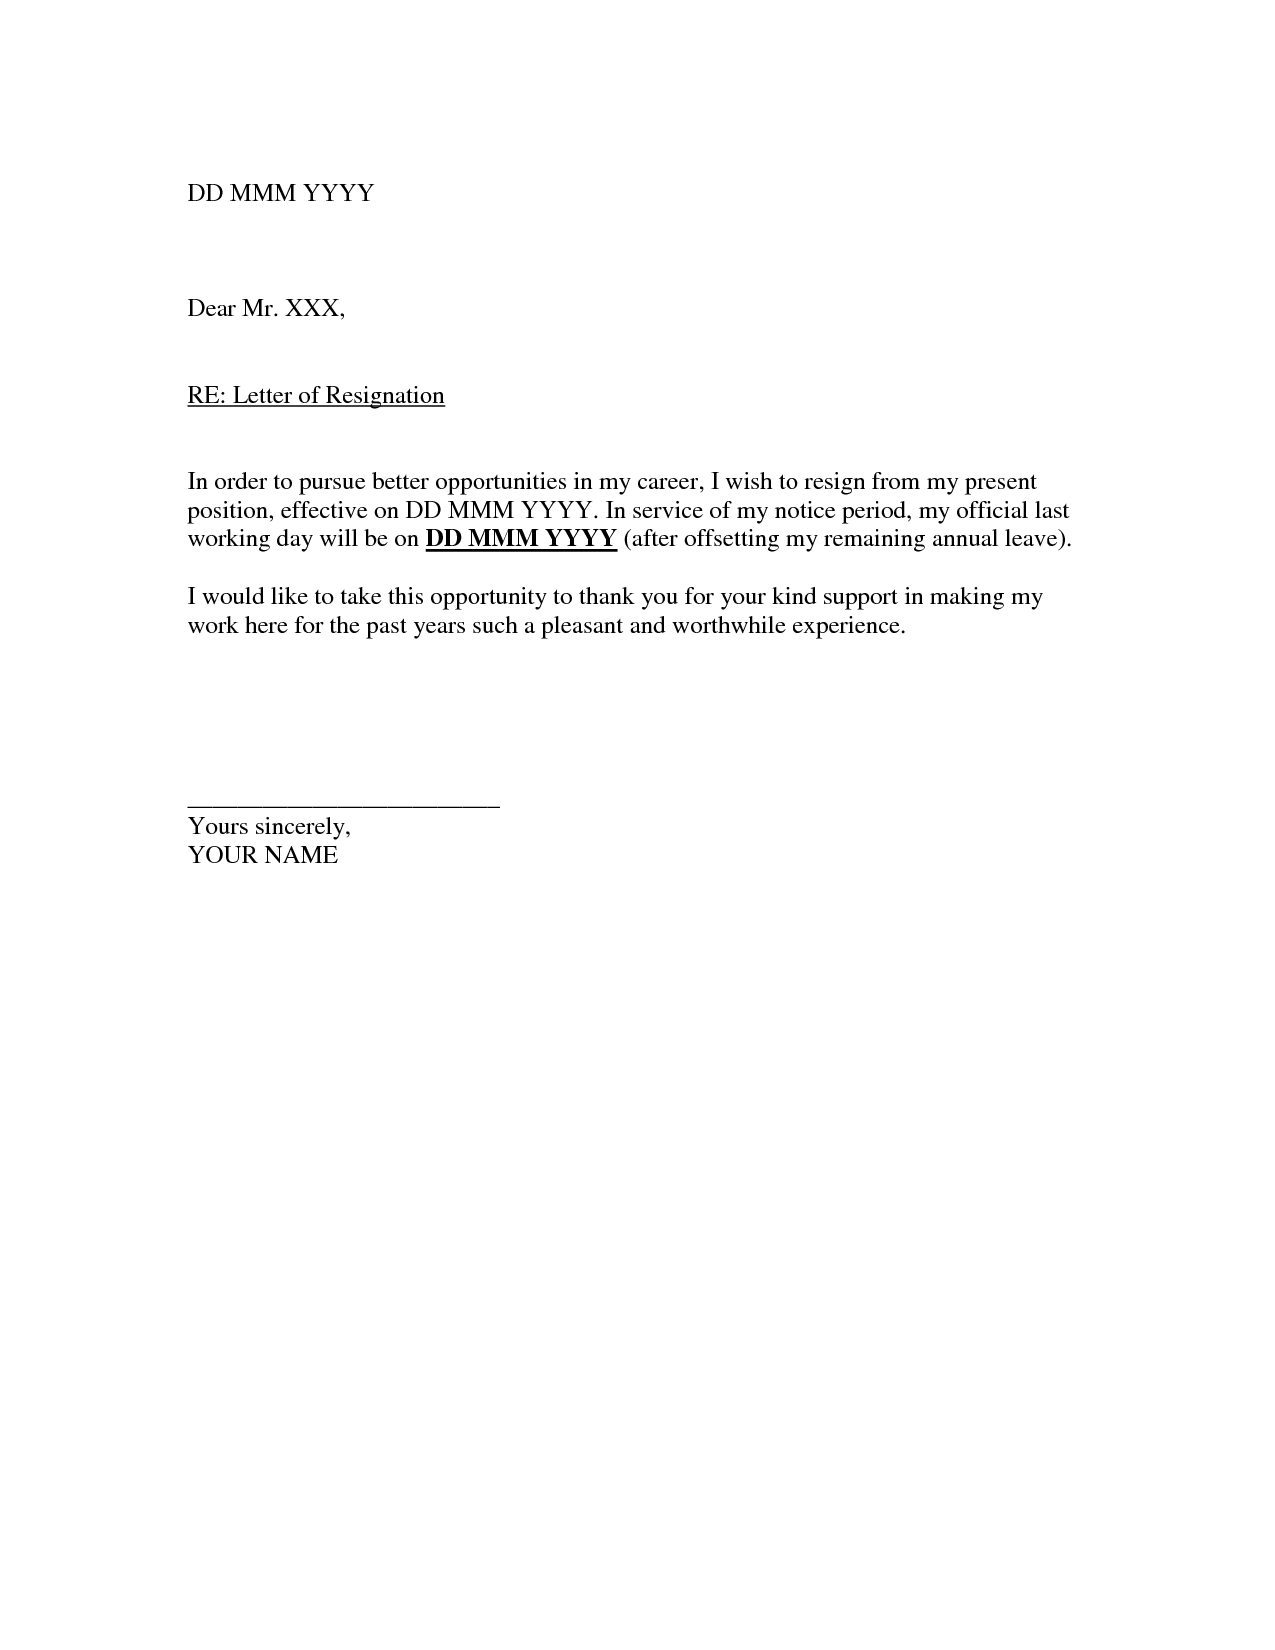 Job resignation template samannetonic job resignation template expocarfo